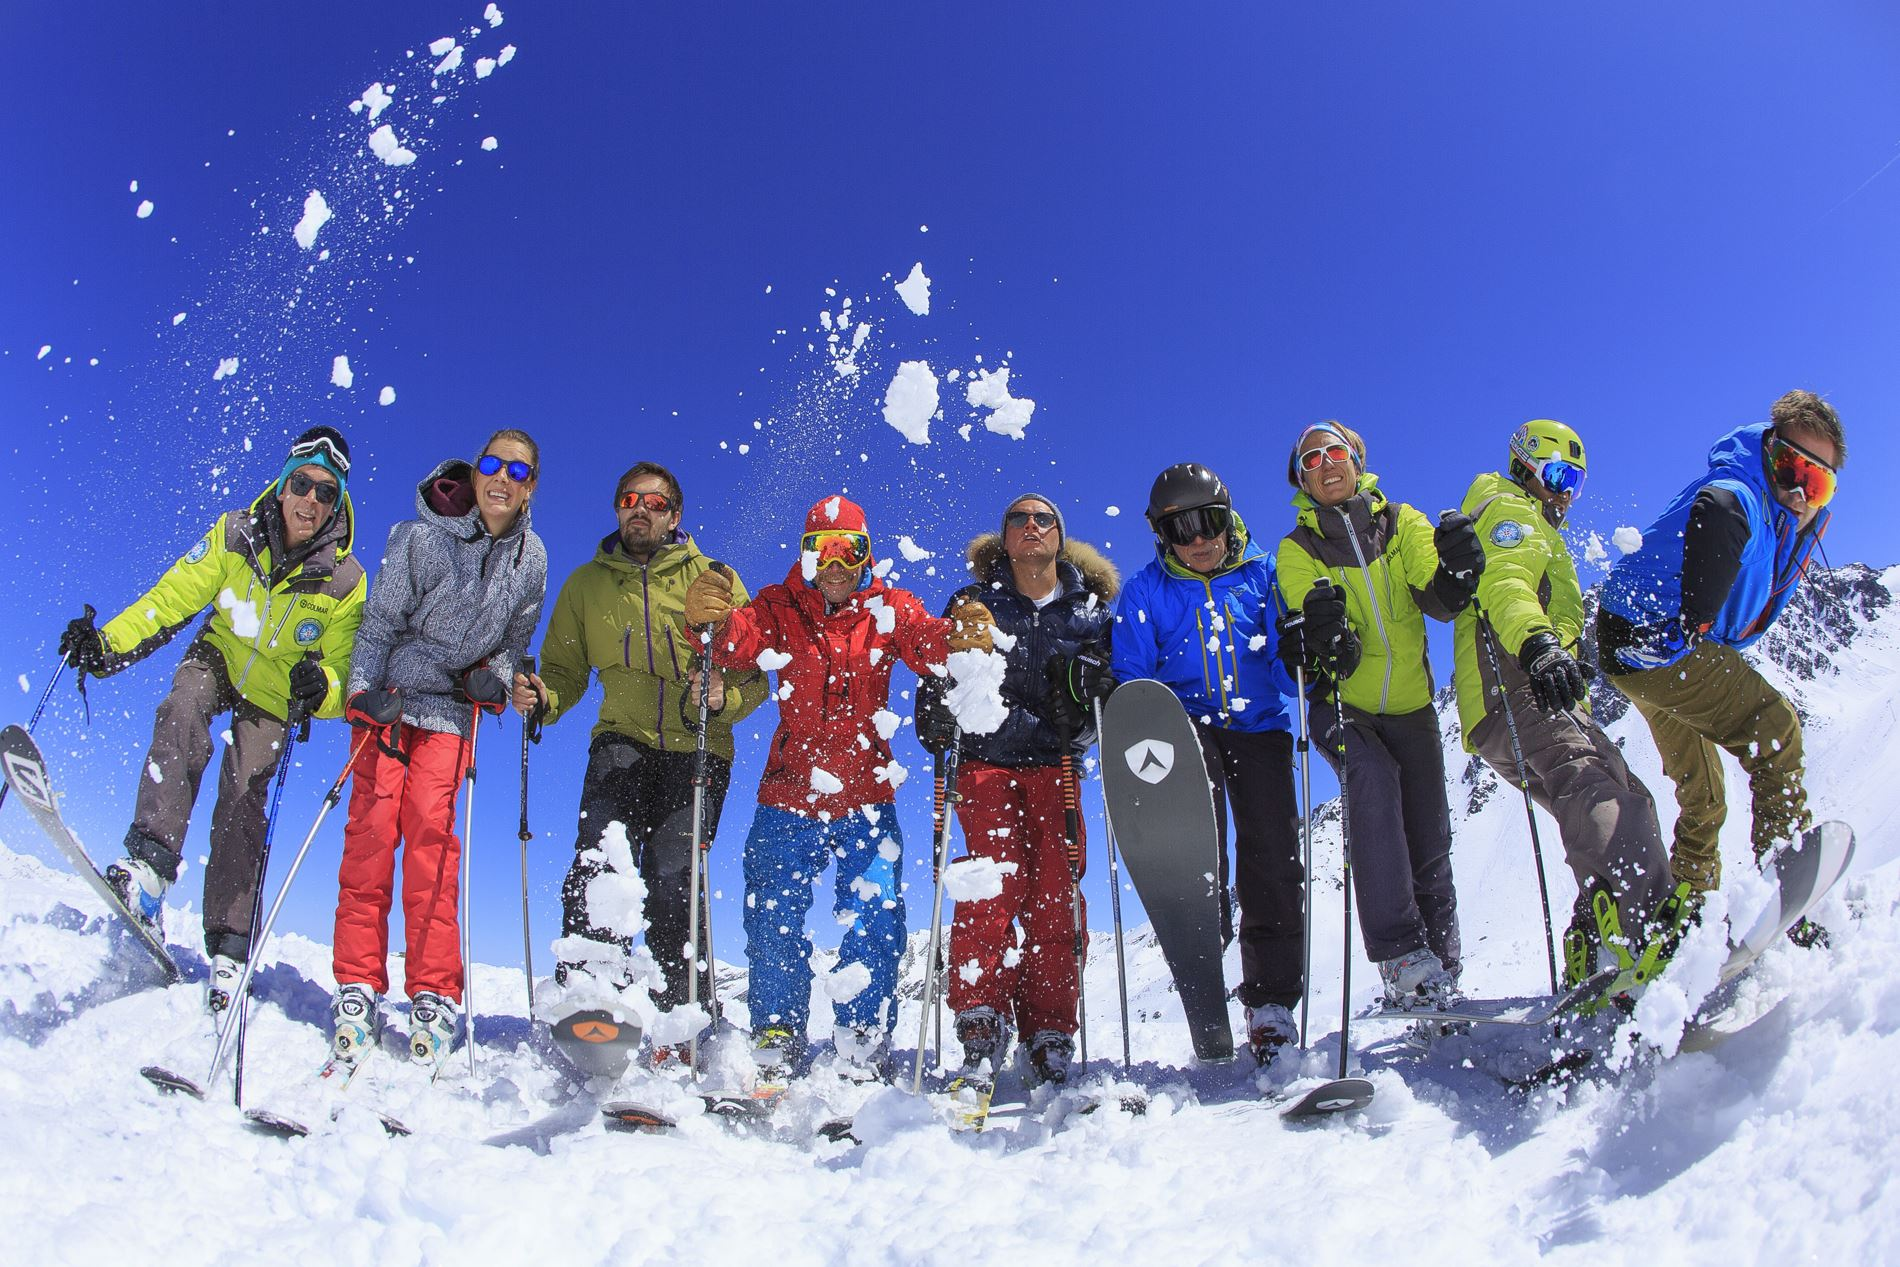 Group Ski Lessons for adults, 6 mornings